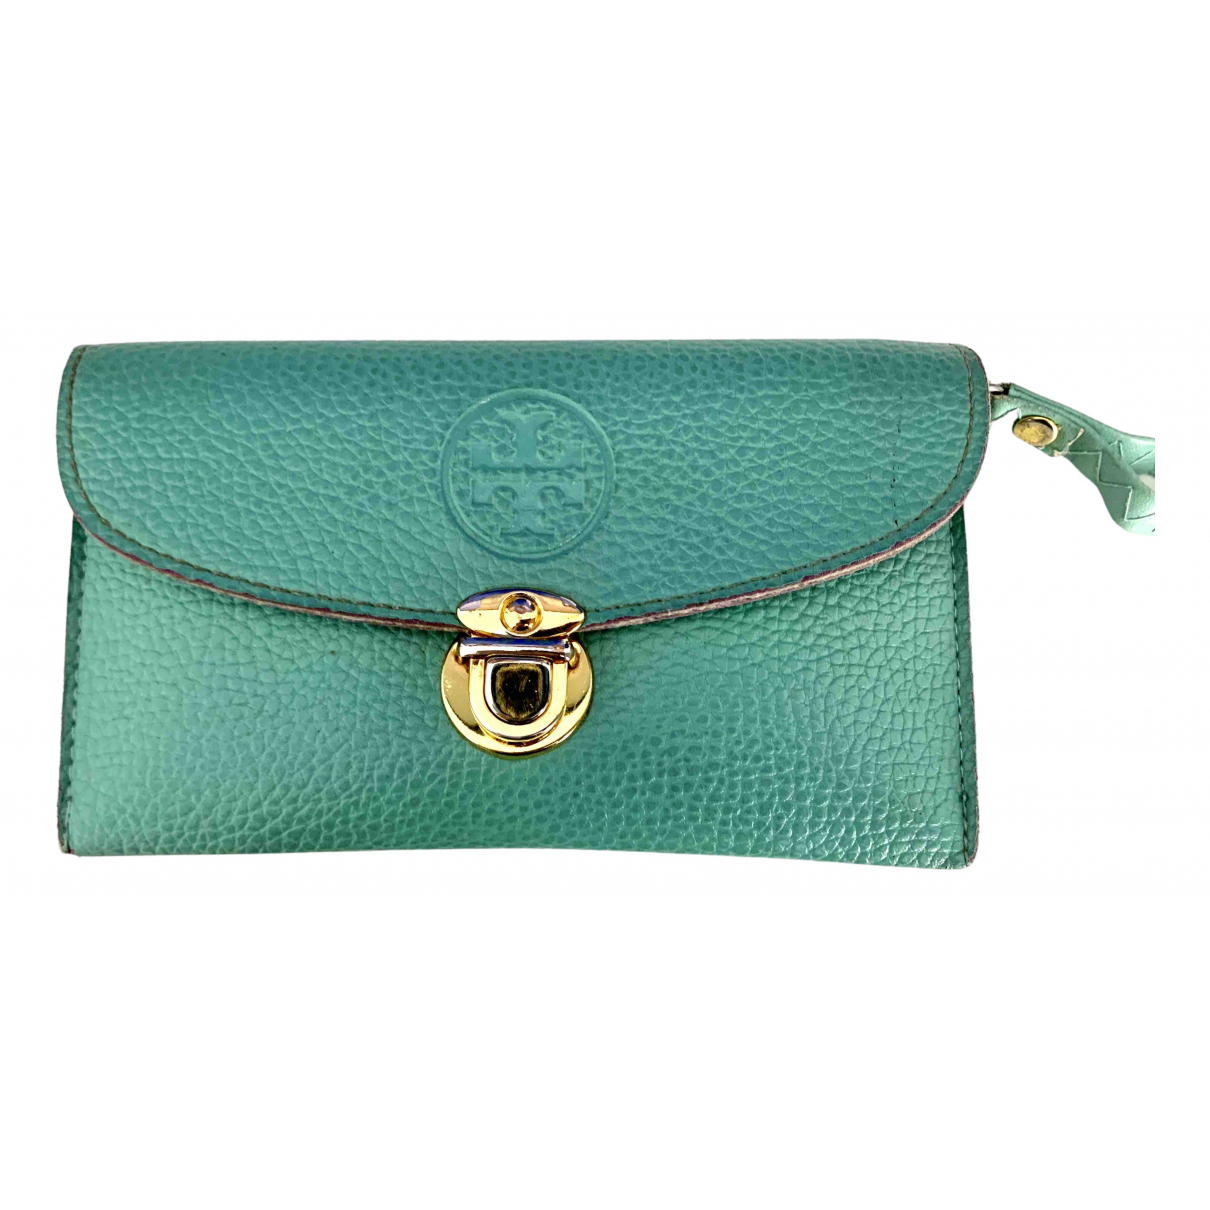 Tory Burch N Turquoise Leather wallet for Women N